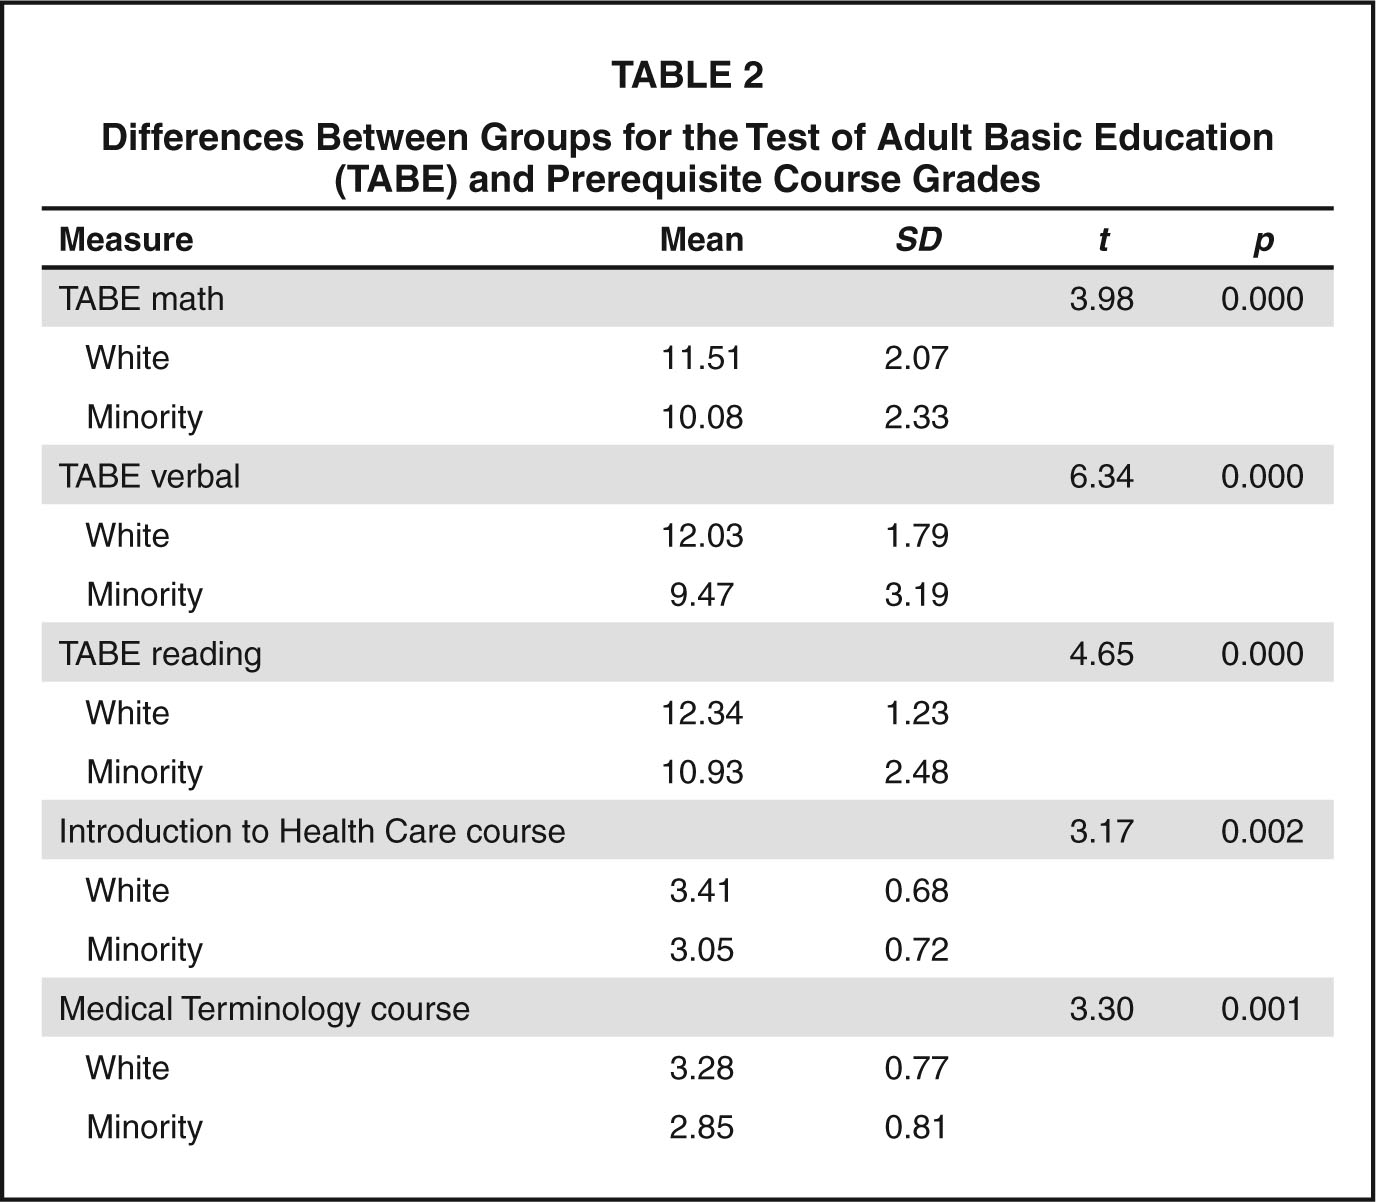 Differences Between Groups for the Test of Adult Basic Education (TABE) and Prerequisite Course Grades